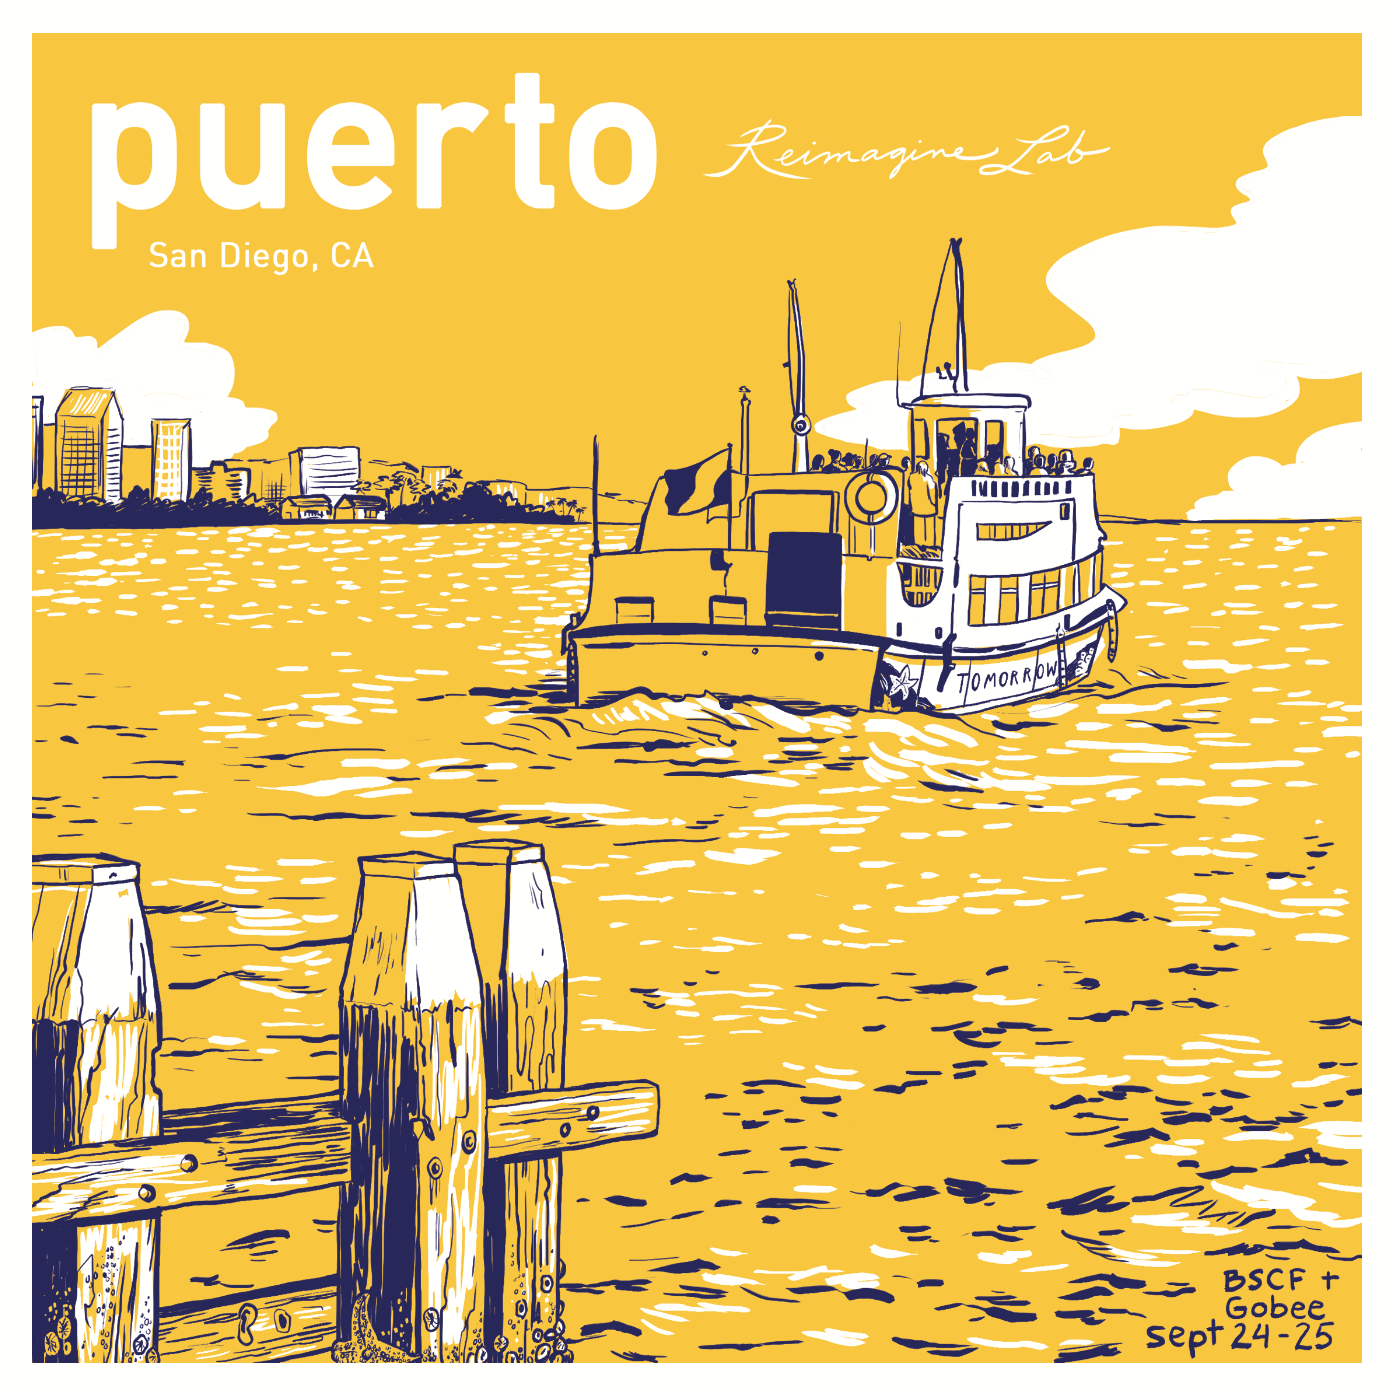 puerto-illustration-art-poster-design-storytelling